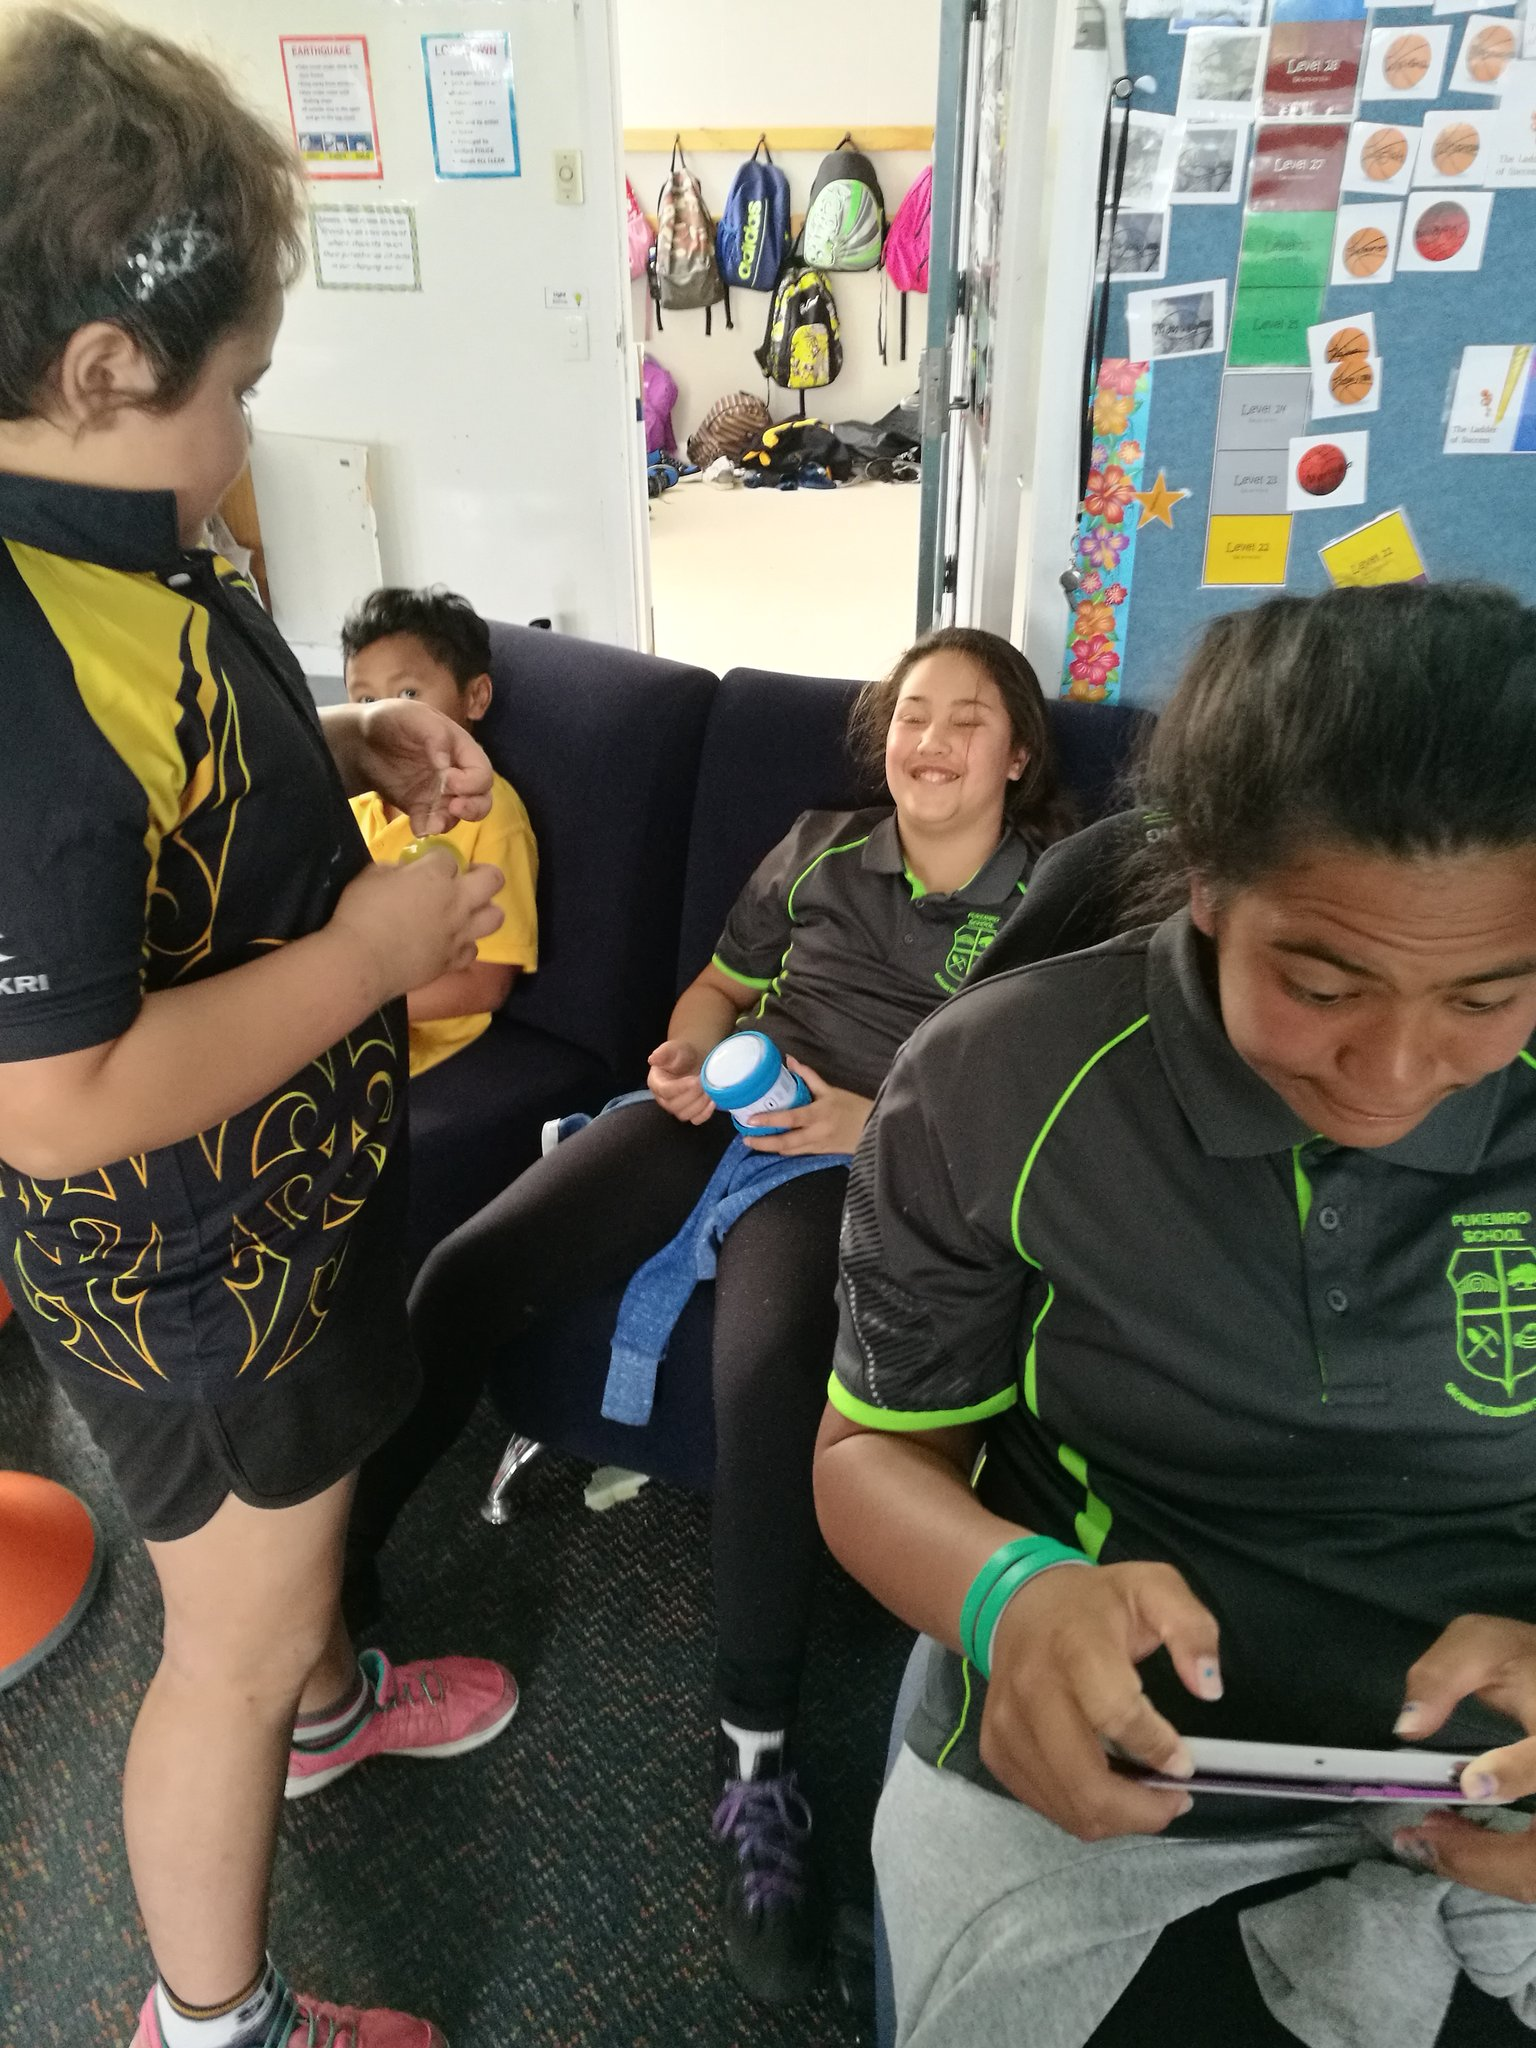 Coding to rescue their Idea from the maze #GlobalMakerDay @nzleeangela https://t.co/SFlVZTpry1